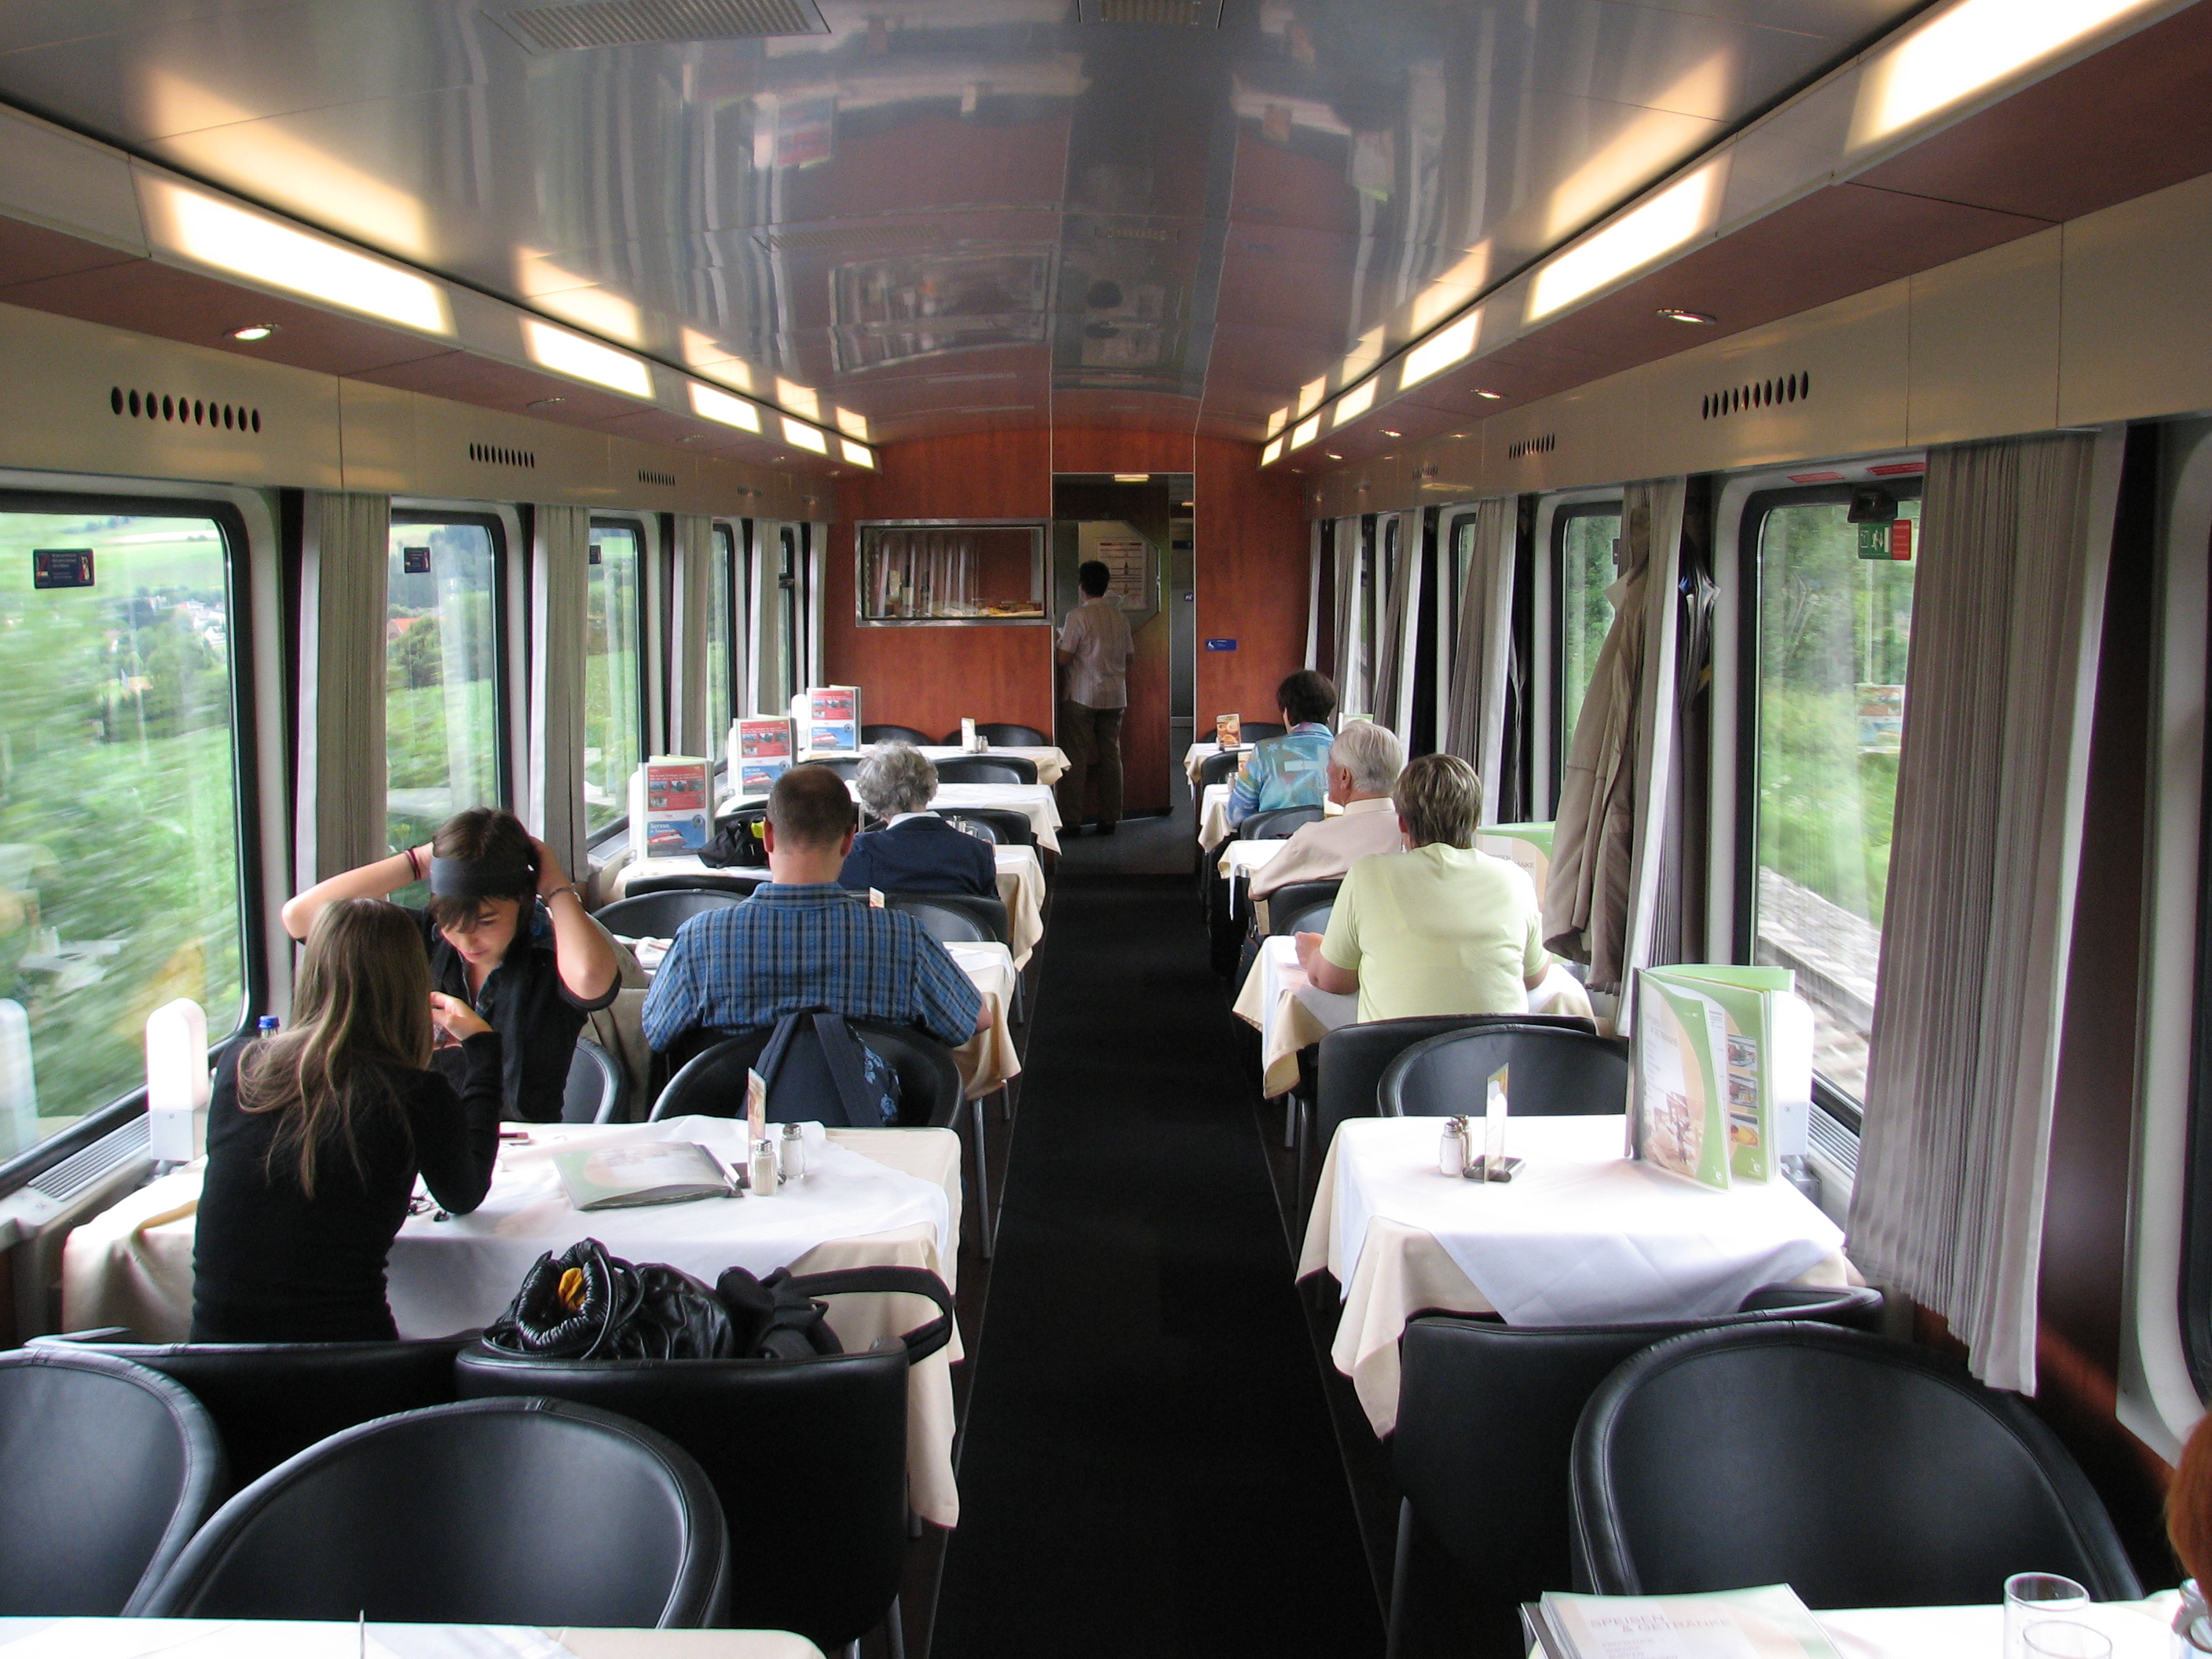 Train of in distance clipart clip freeuse library Dining car - Wikipedia clip freeuse library